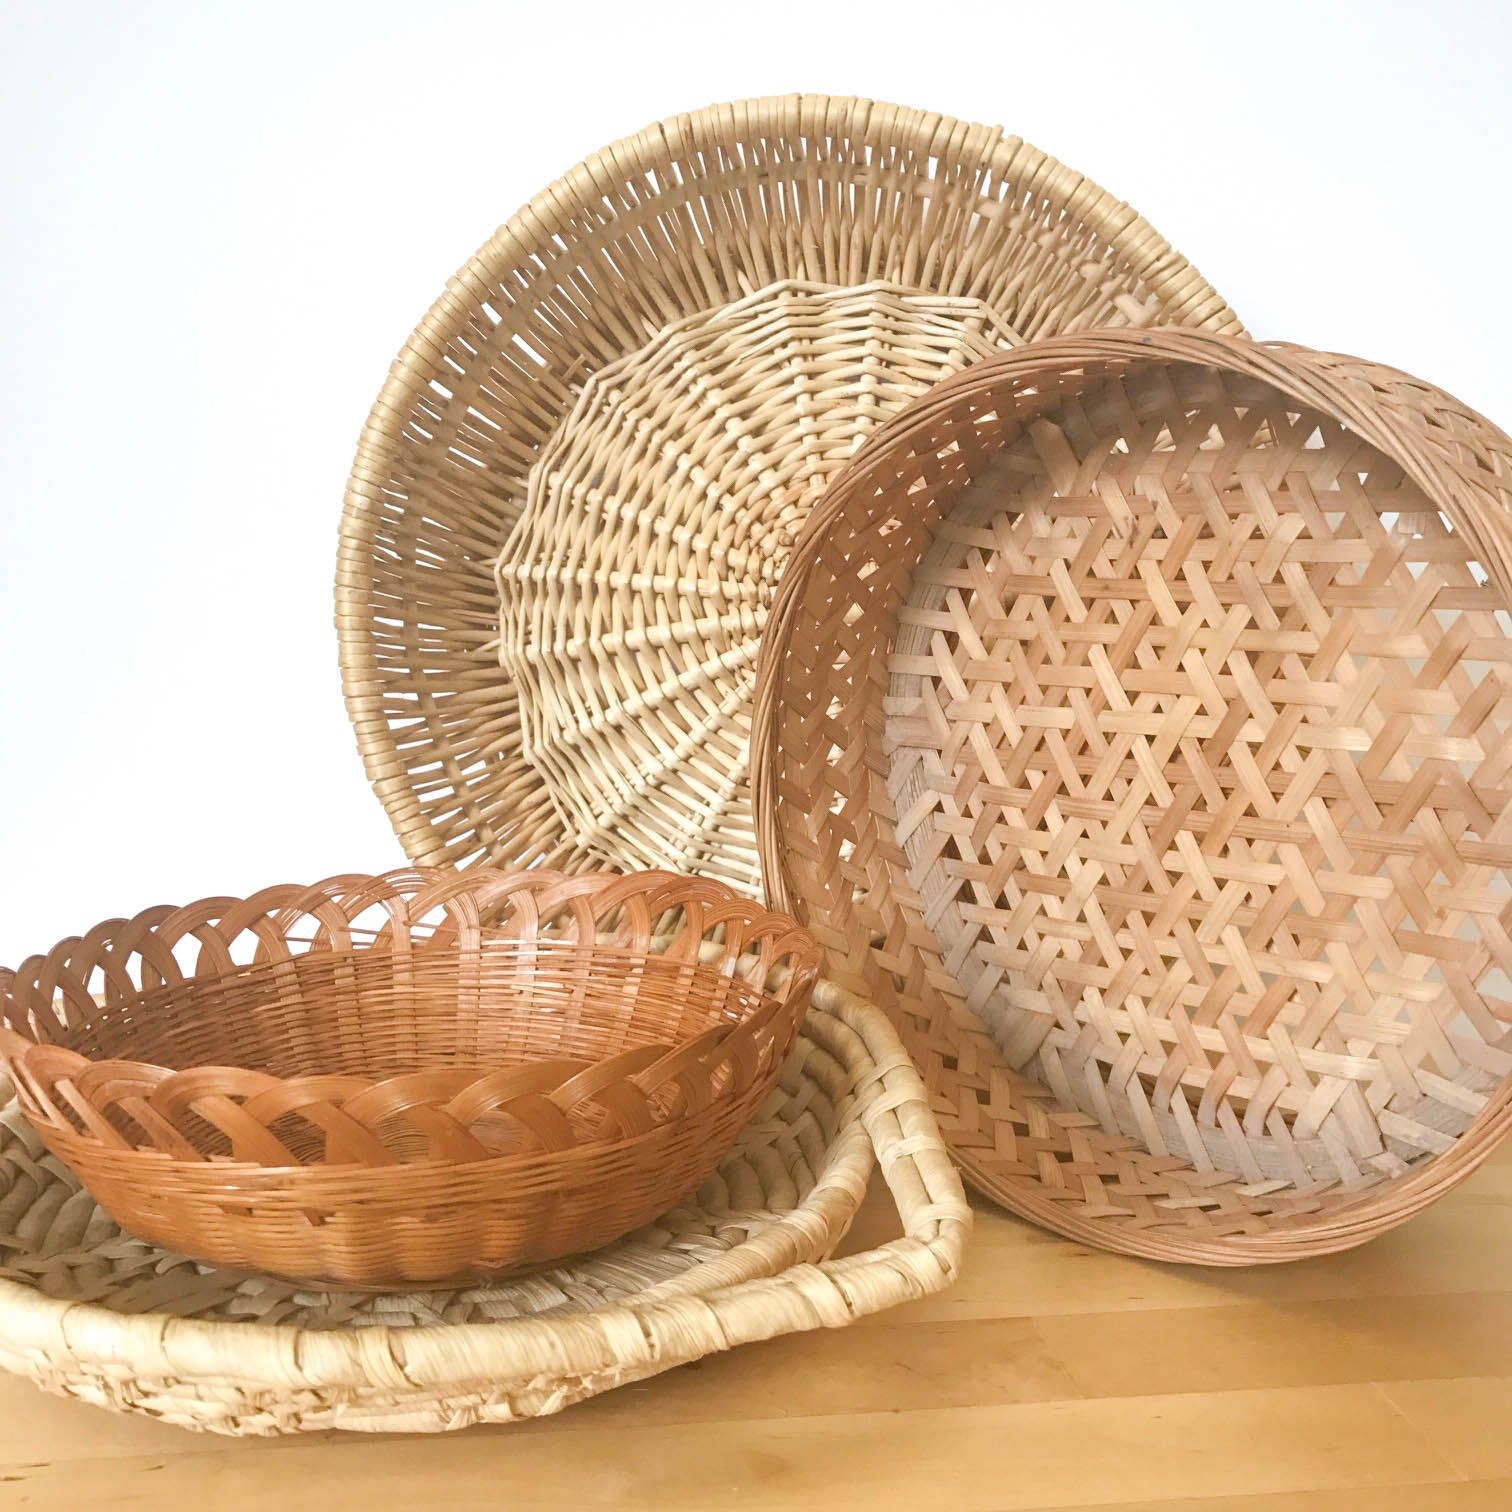 Woven Basket Wall Hanging - Set of 4, Wicker Basket Set, Woven ...